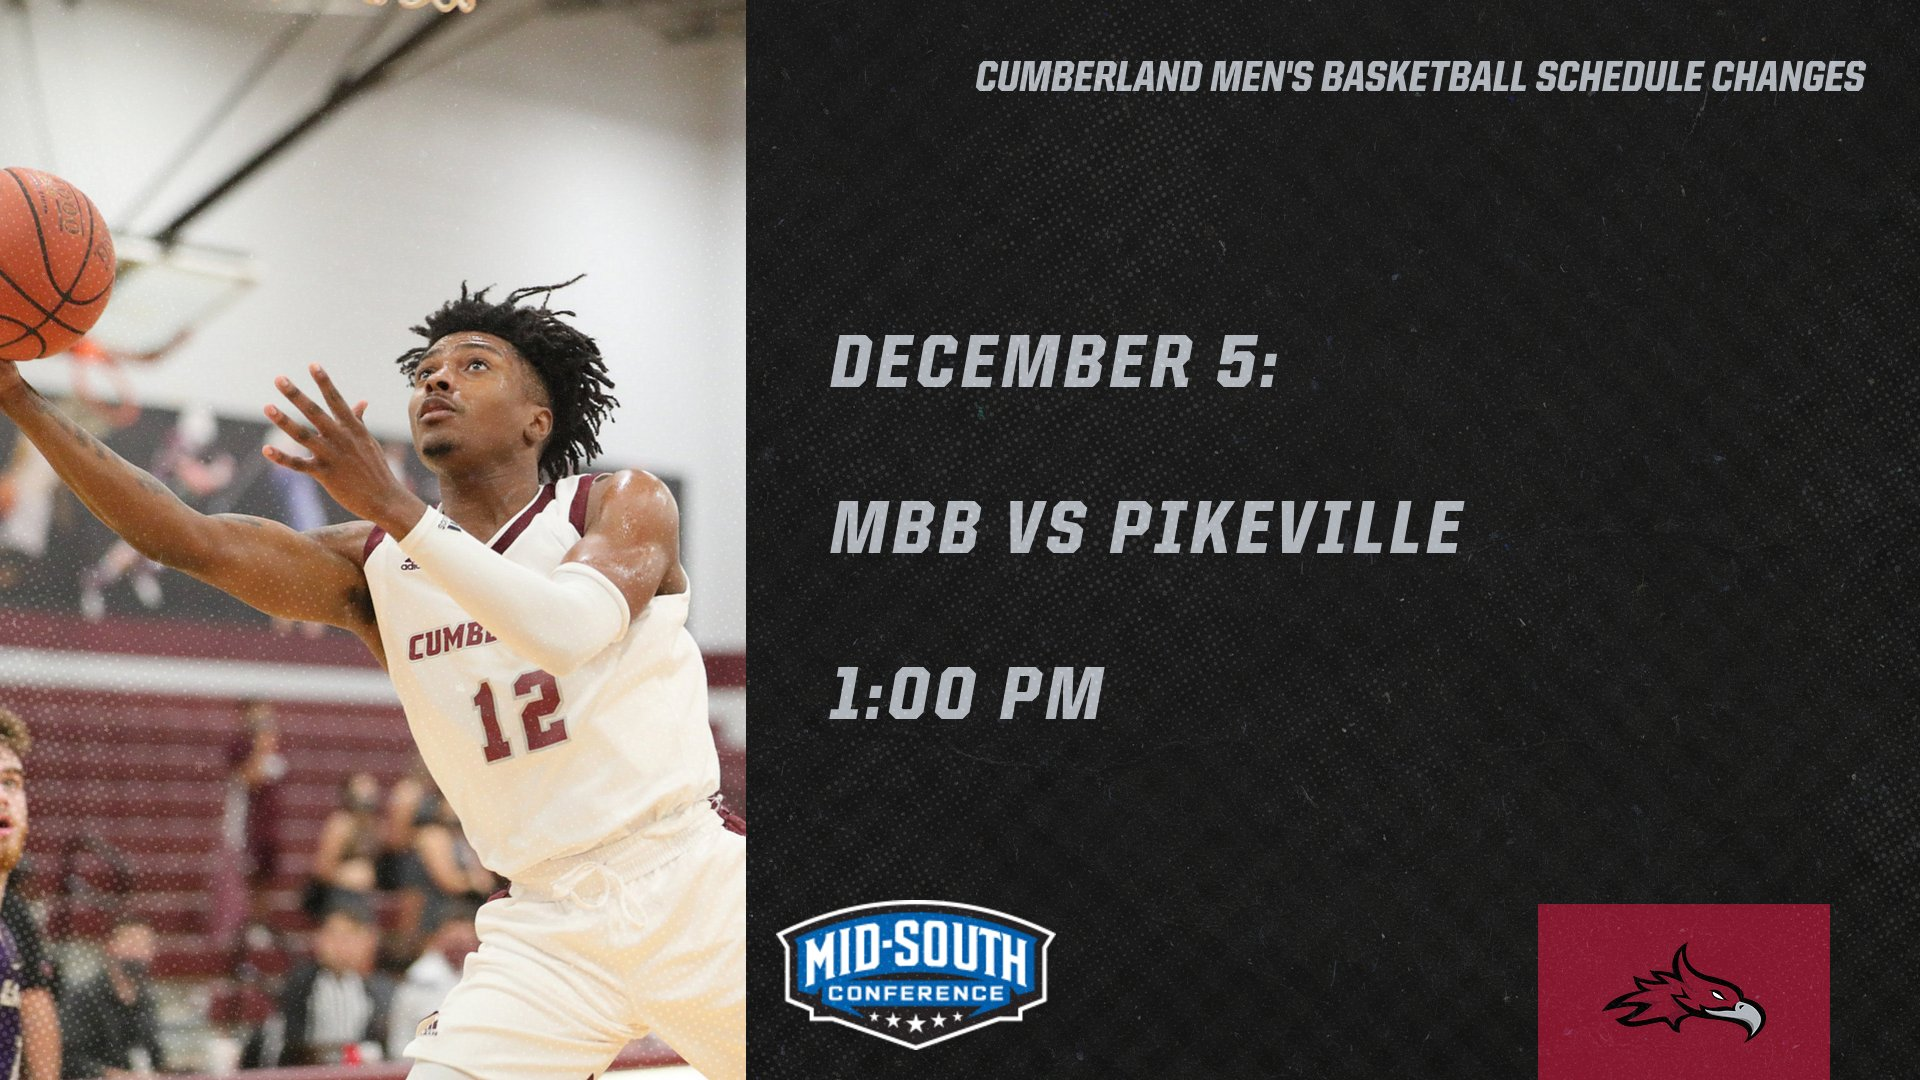 Additional Cumberland Basketball Schedule Changes